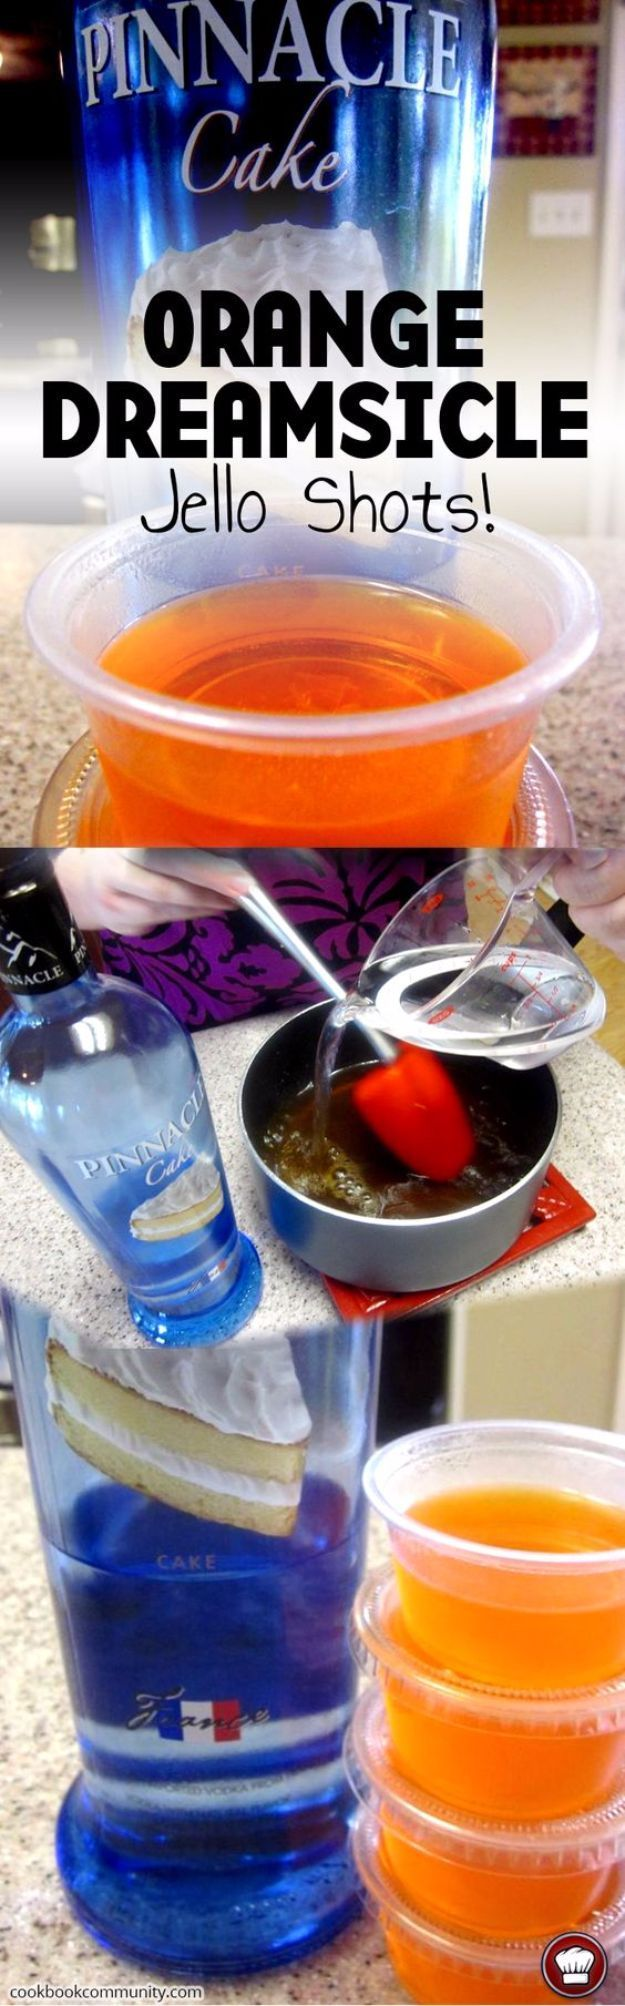 Best Jello Shot Recipes - Orange Dreamsicle Jello Shots - Easy Jello Shots Recipe Ideas with Vodka, Strawberry, Tequila, Rum, Jolly Rancher and Creative Alcohol - Unique and Fun Drinks for Parties like Whiskey Fireball, Fall Halloween Versions, Malibu, 4th of July, Birthday, Summer, Christmas and Birthdays http://diyjoy.com/best-jello-shot-recipes #vodkacocktails